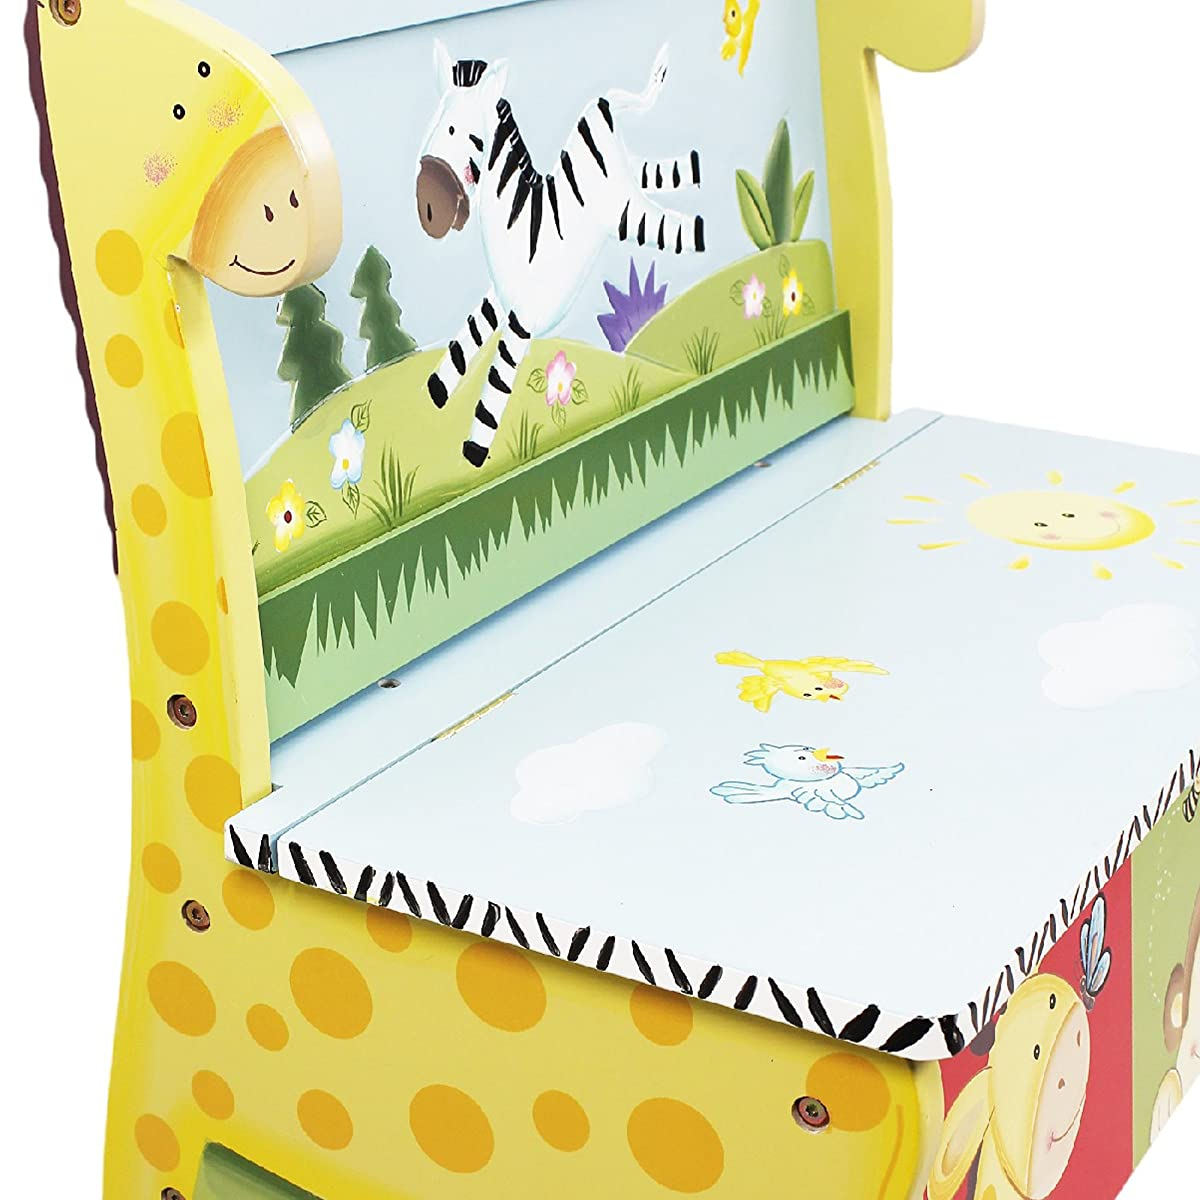 Fantasy Fields - Sunny Safari Animals Thematic Kids Storage Bench| Imagination Inspiring Hand Crafted & Hand Painted Details Non-Toxic, Lead Free Water-based Paint